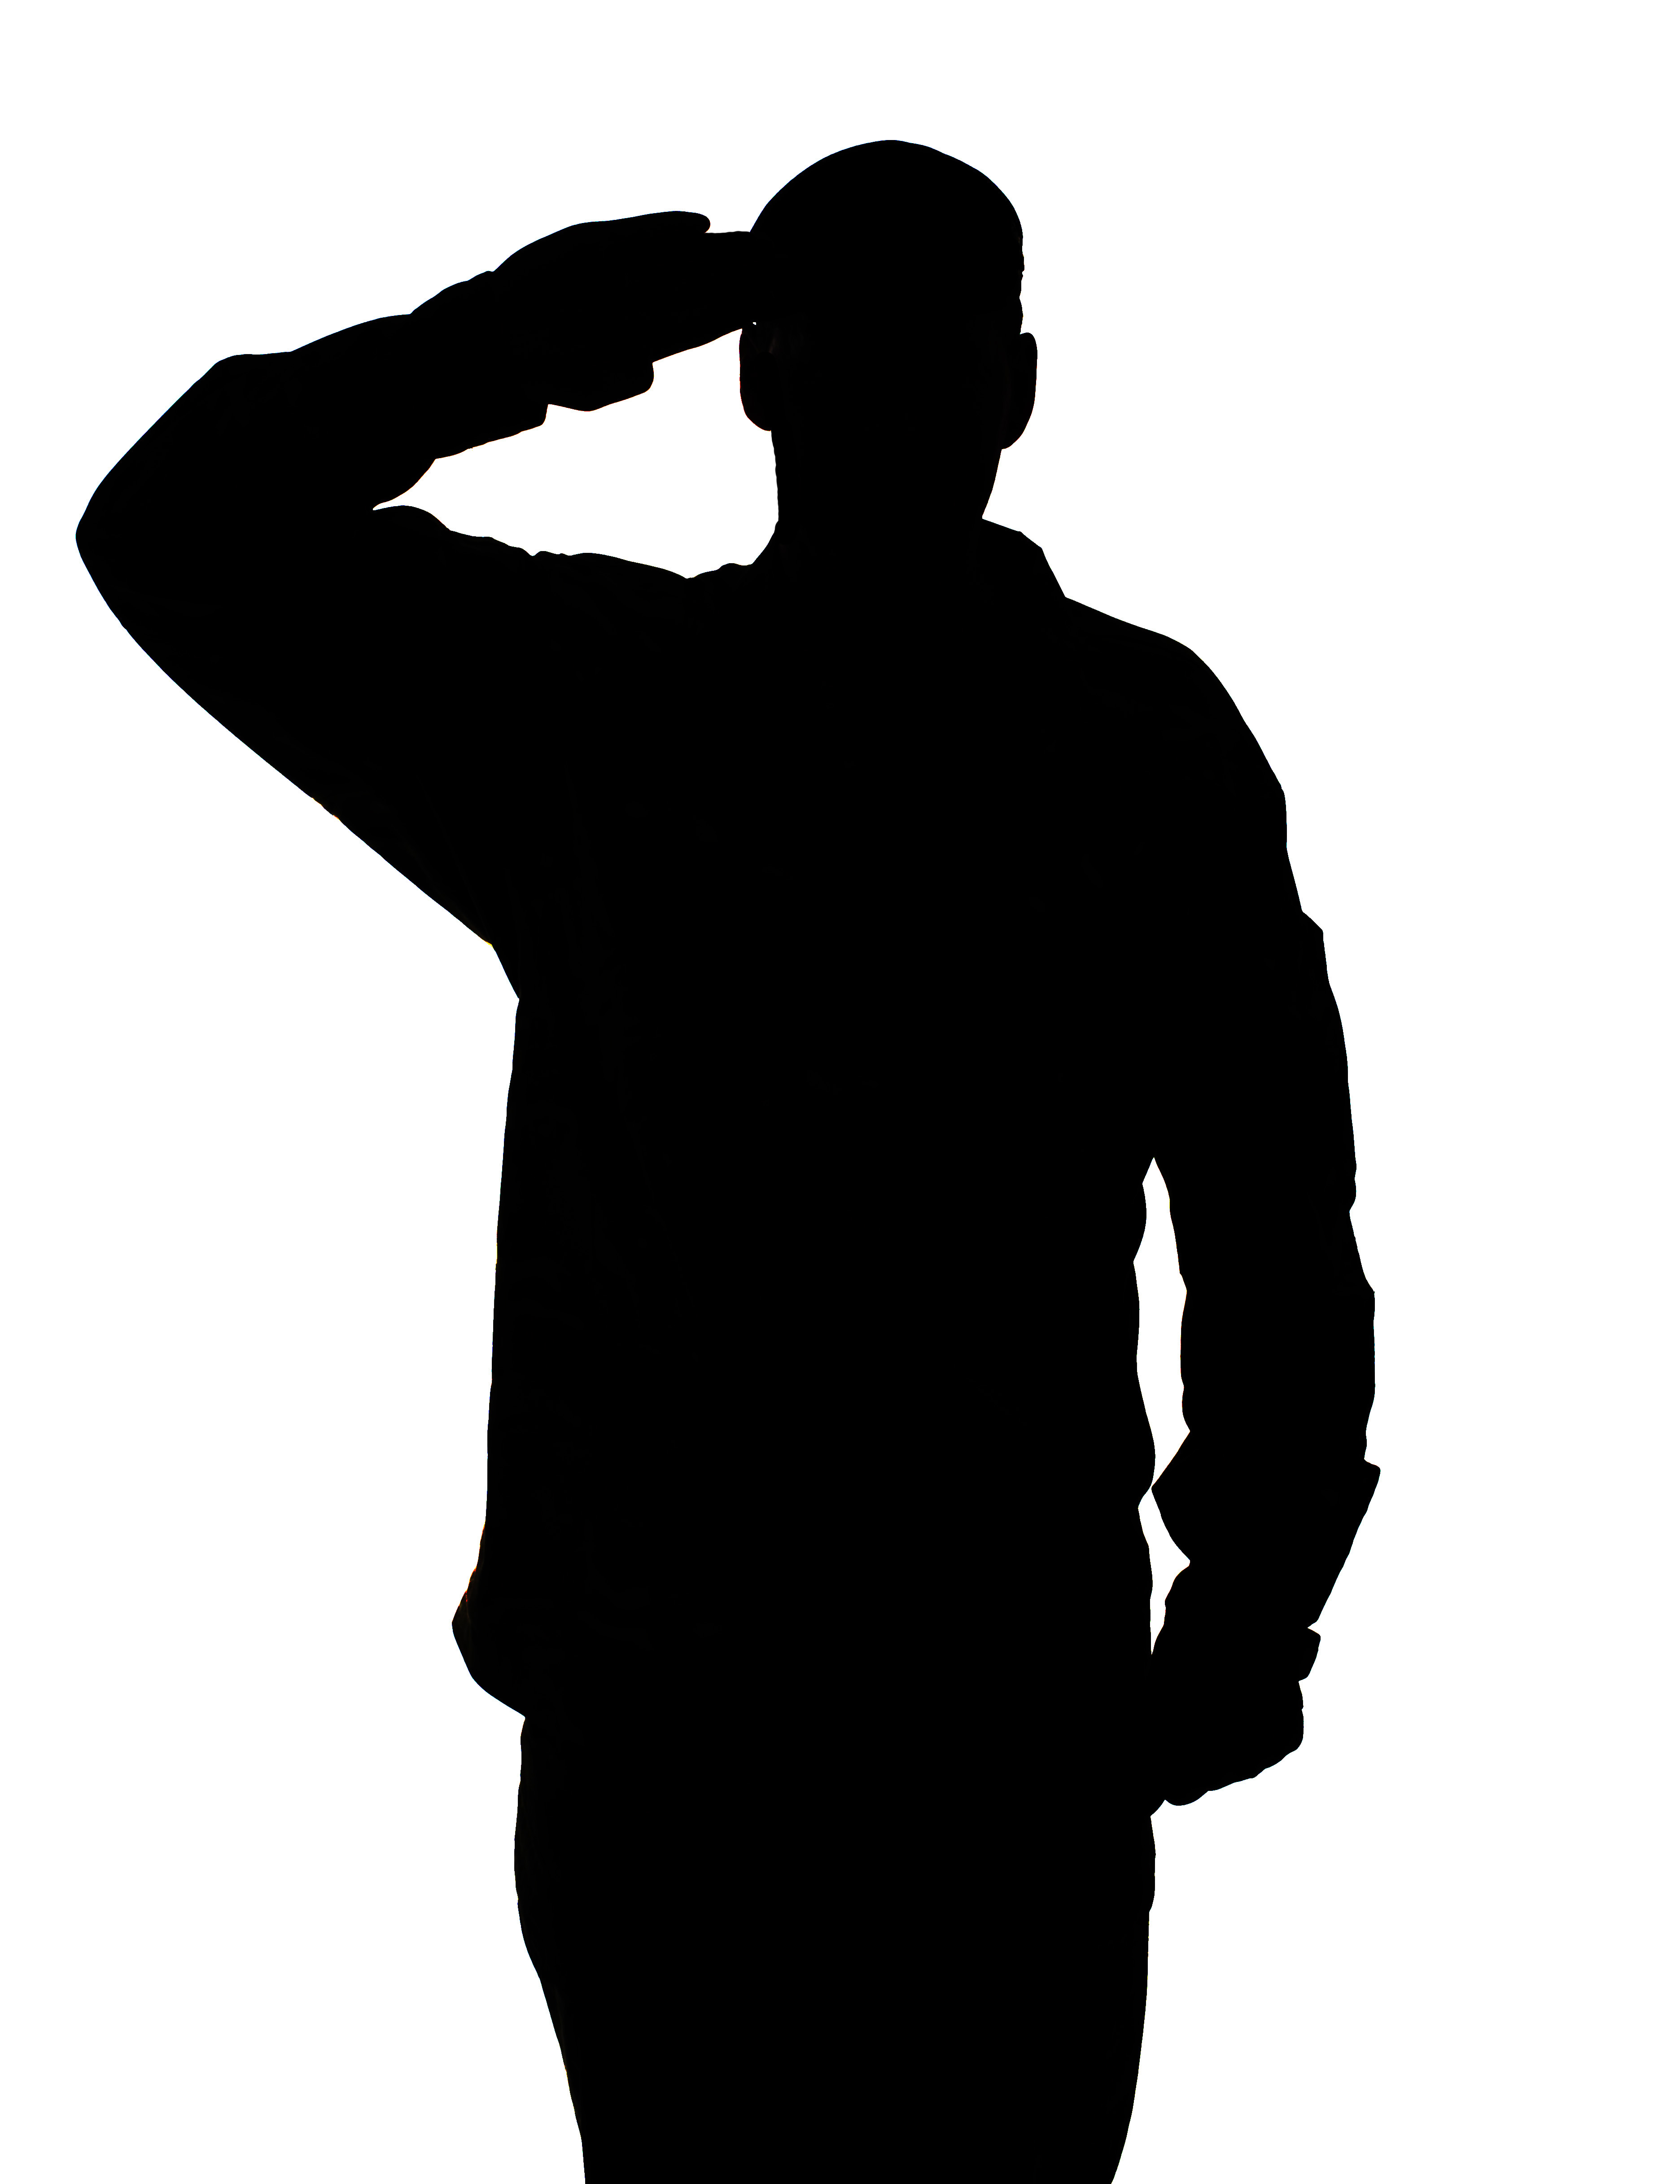 Us clipart soldier soldier. Civil war silhouette at